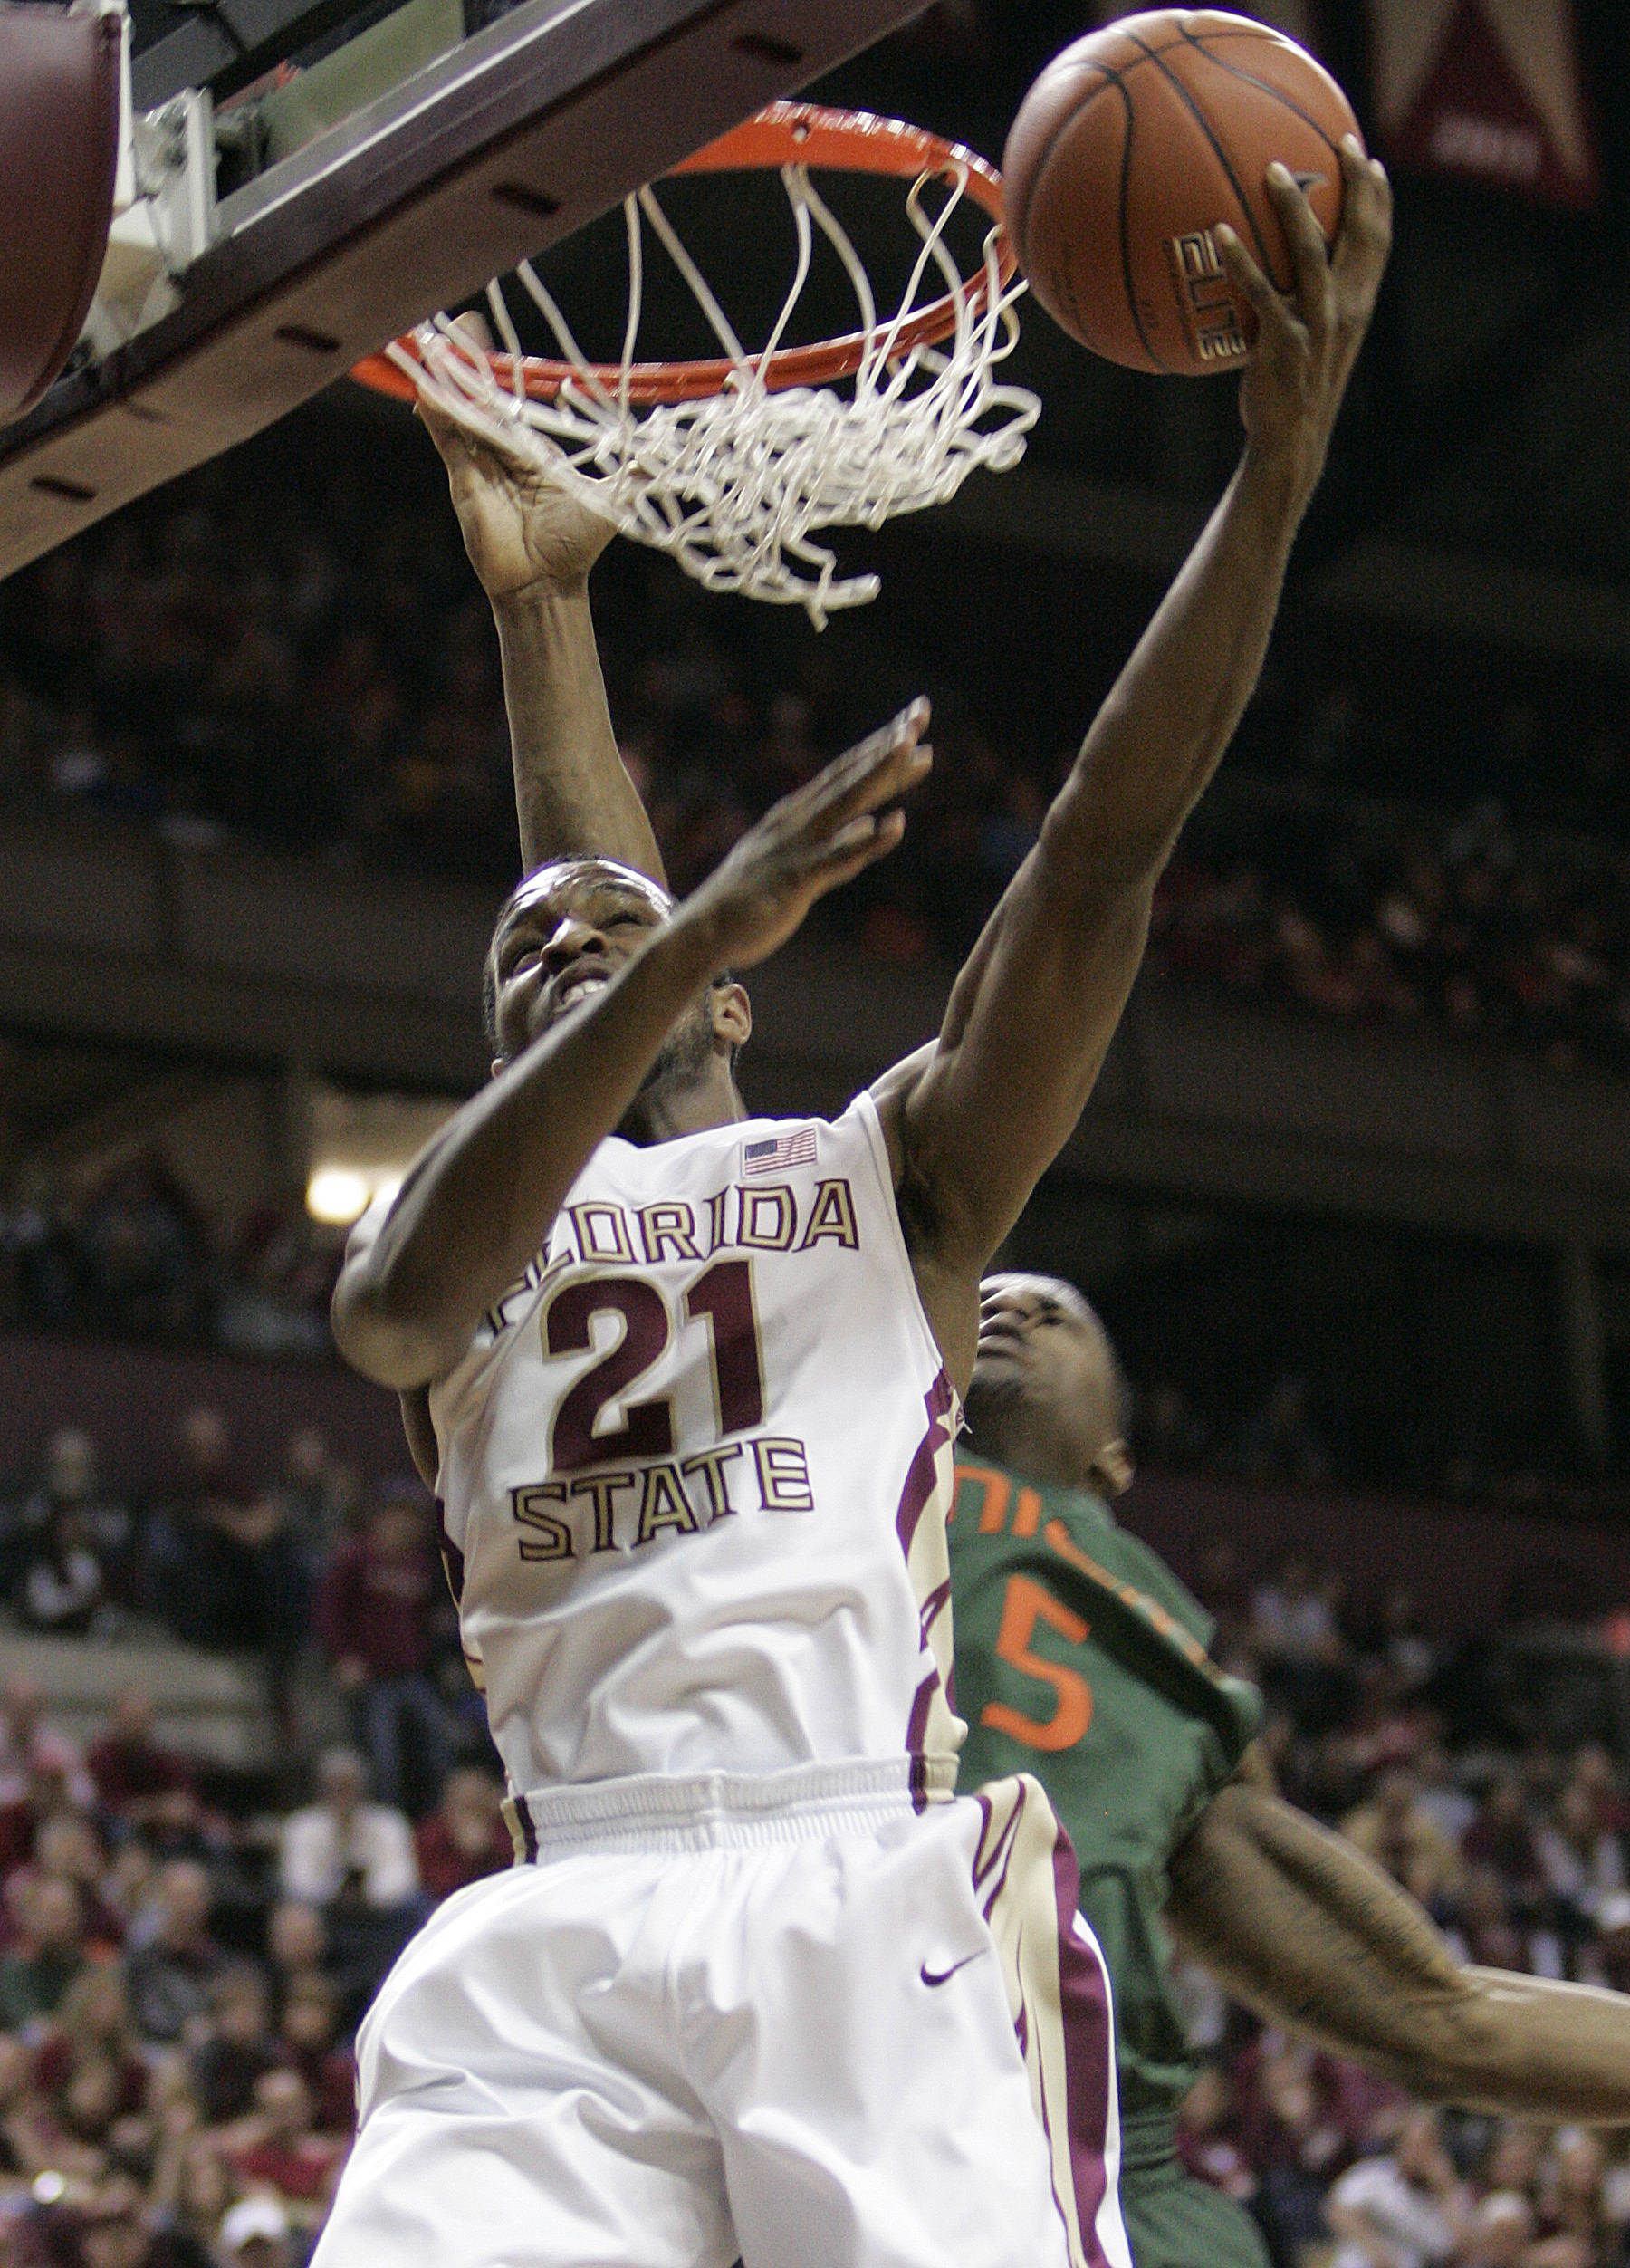 Florida State's Michael Snaer attempts a shot against the defense of Miami's Dequan Jones in the second half of an NCAA college basketball game on Saturday, Feb. 11, 2012 in Tallahassee, Fla.(AP Photo/Steve Cannon)